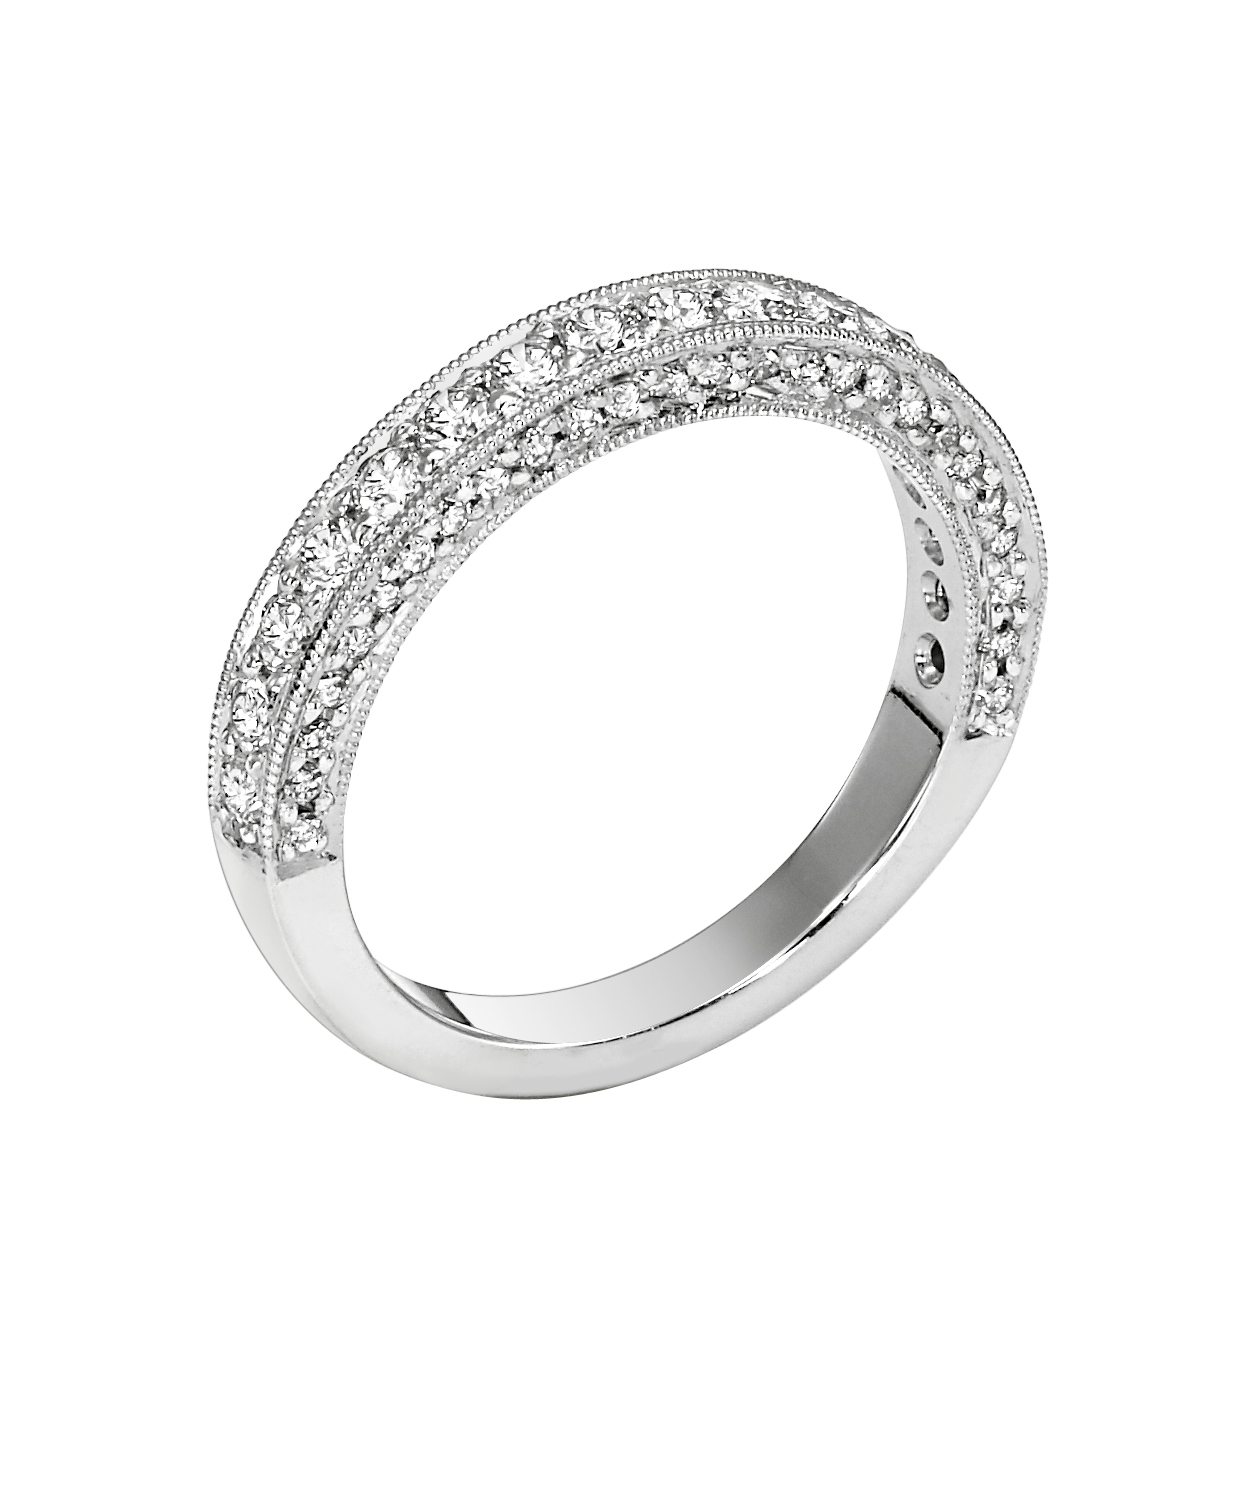 Lieberfarb Platinum Wedding Band